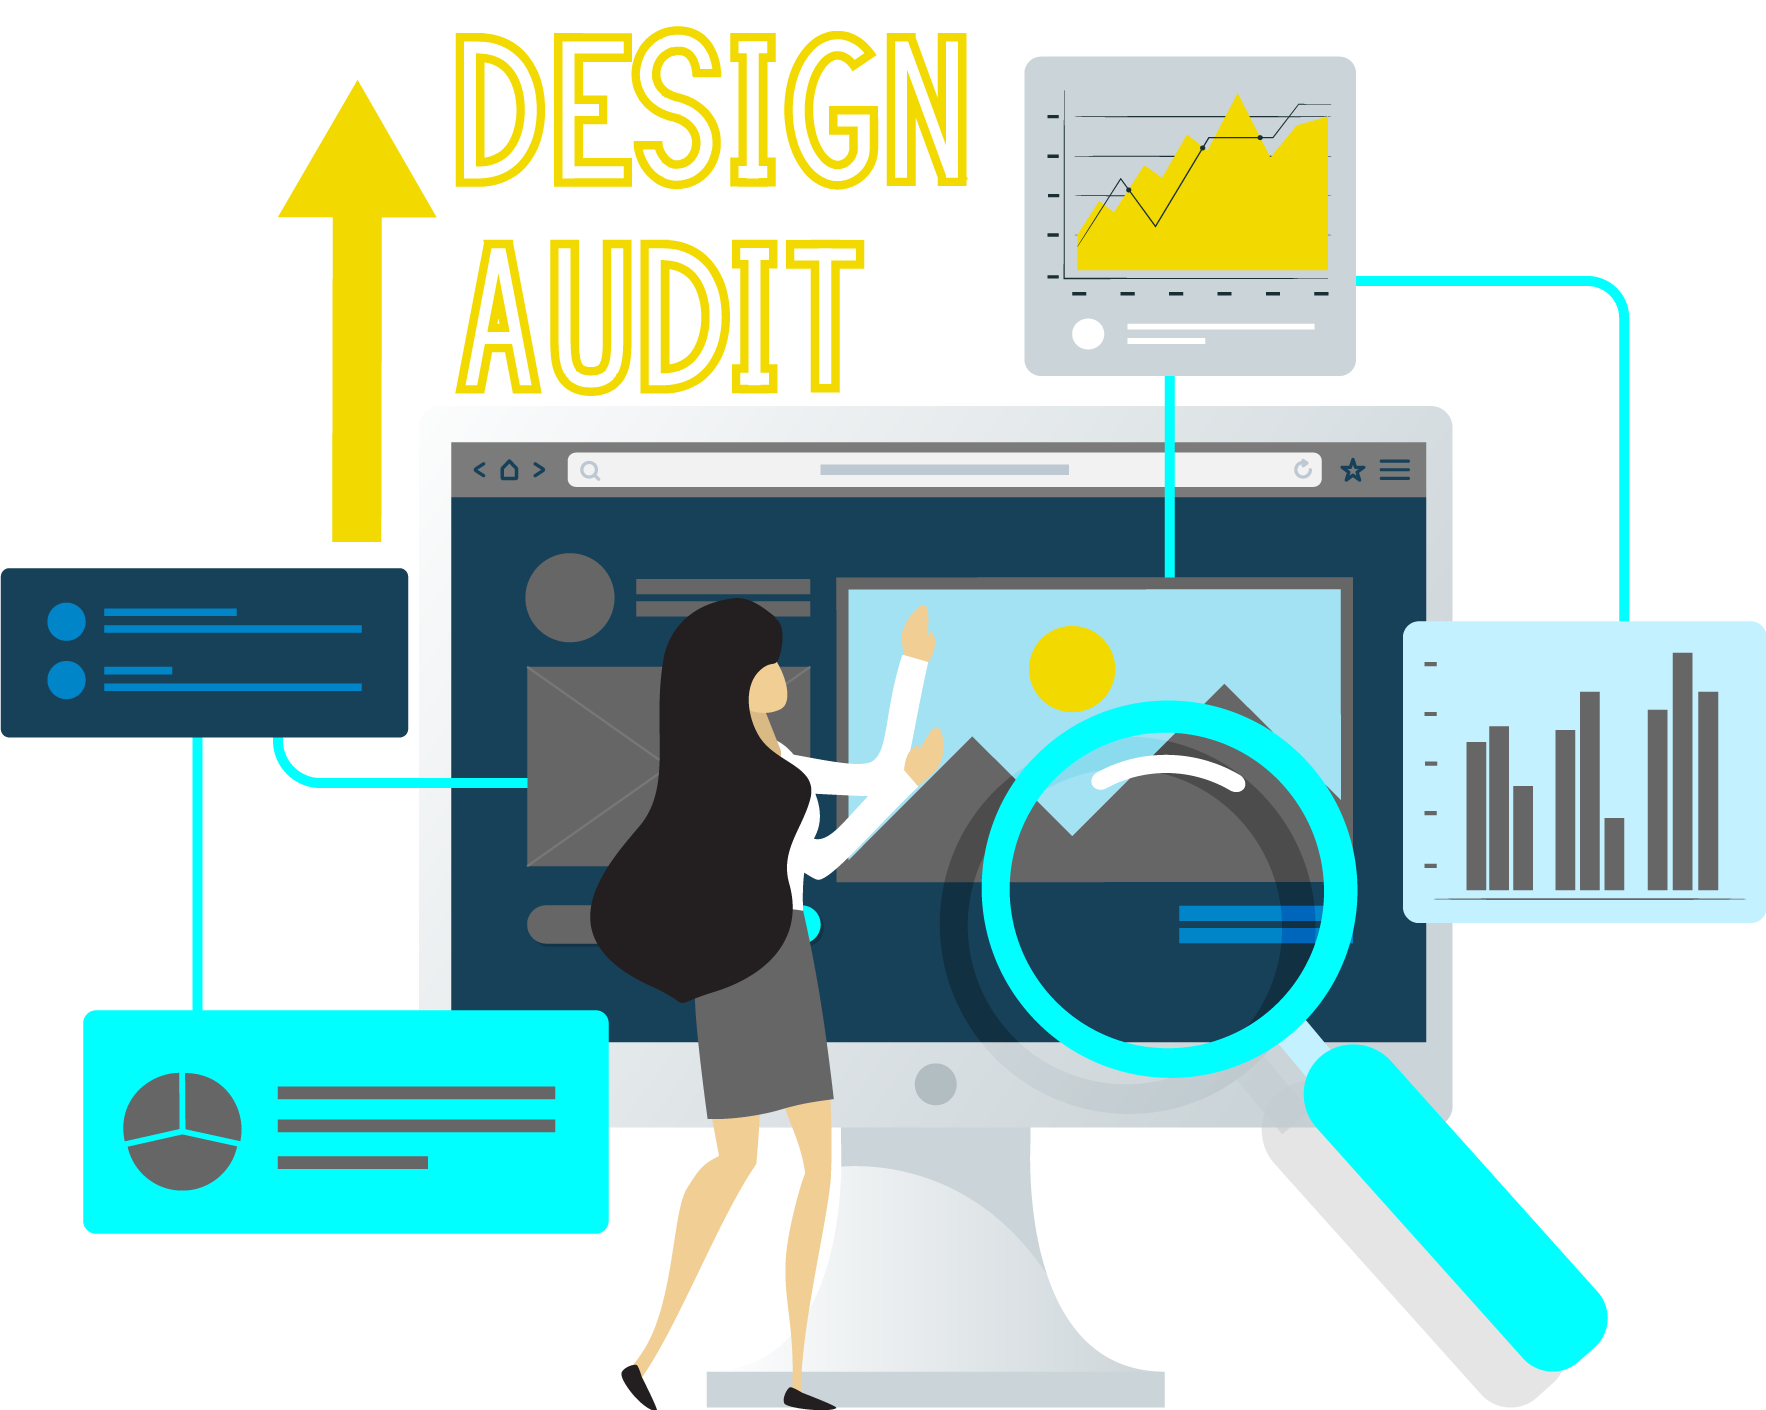 Design audit